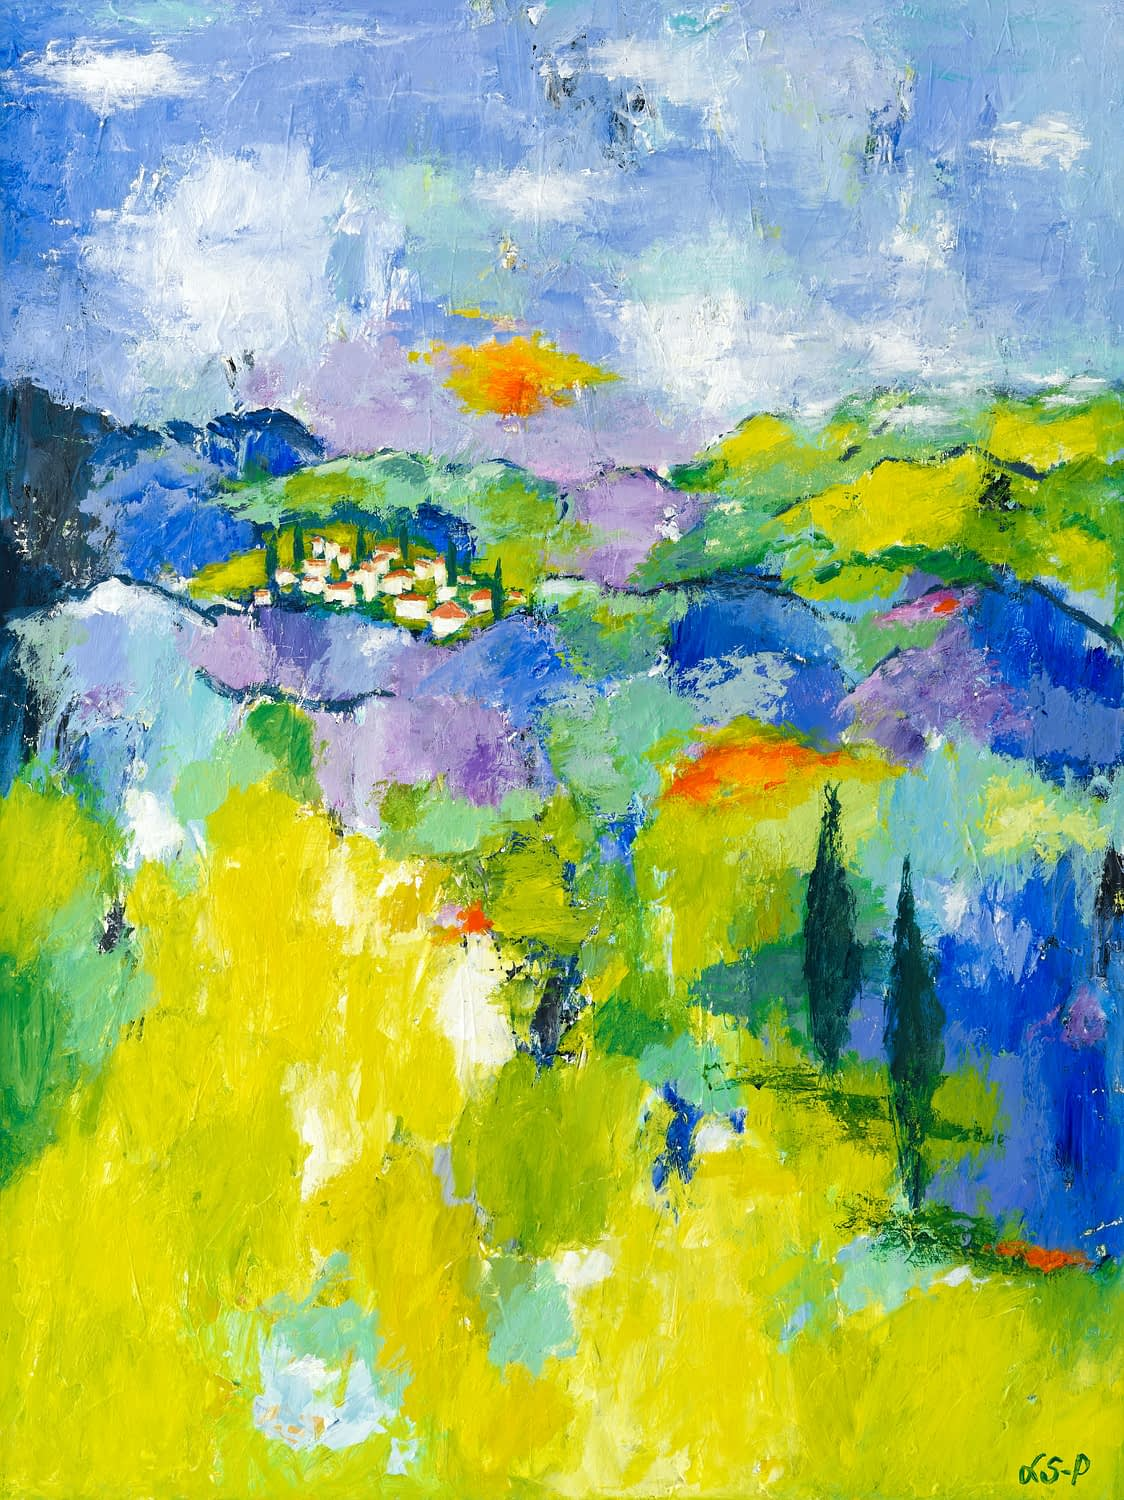 """Lene Schmidt-Petersen: """"Let's go down to the south of France (where we can love, I think there is a chance)"""" (60 x 80 cm)"""